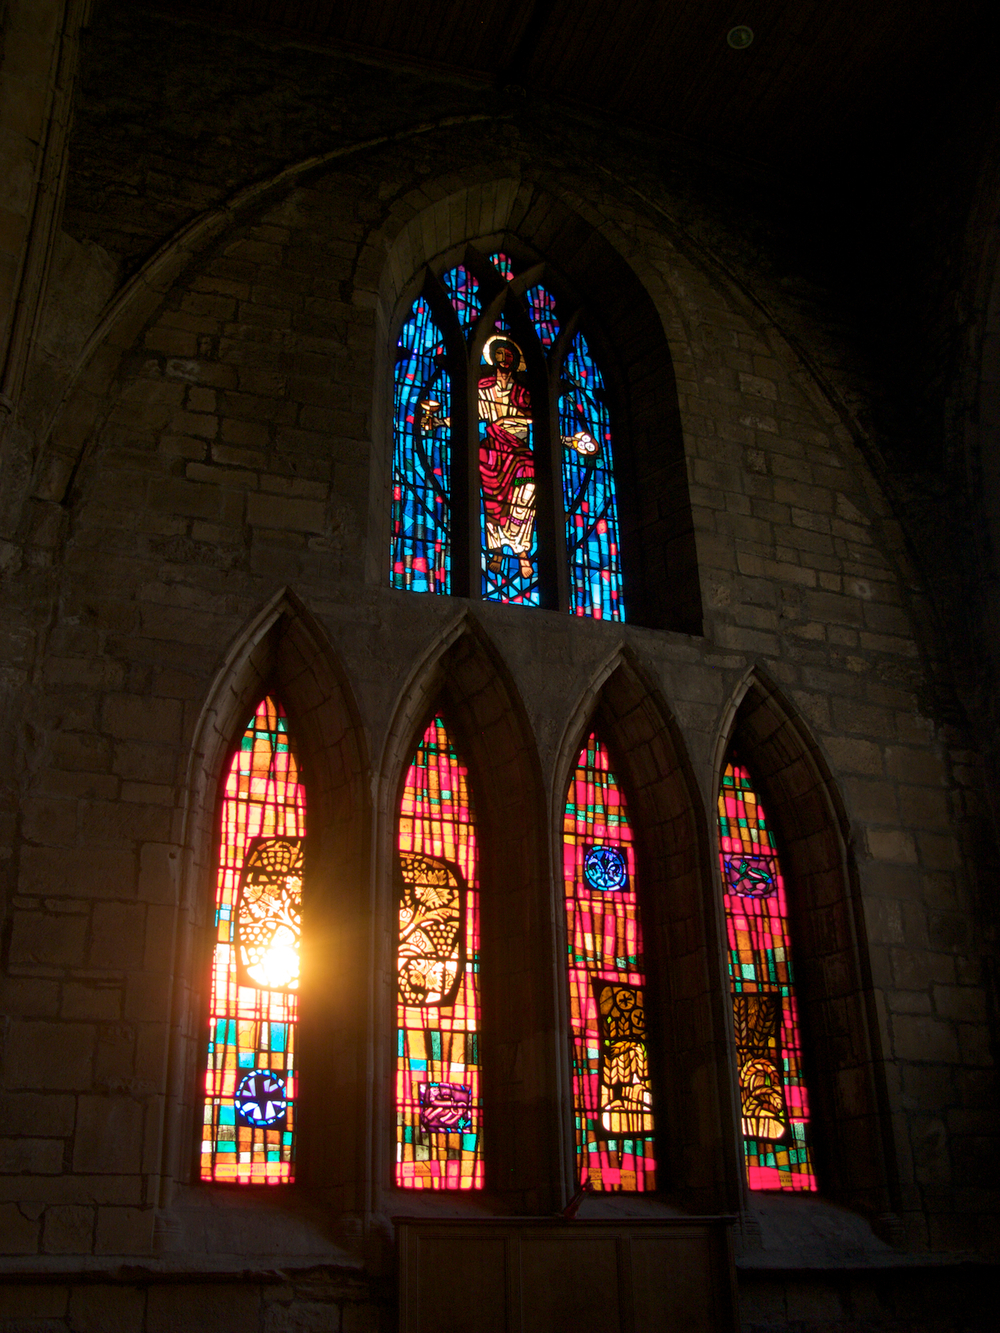 Stained glass windows at Pluscarden Abbey